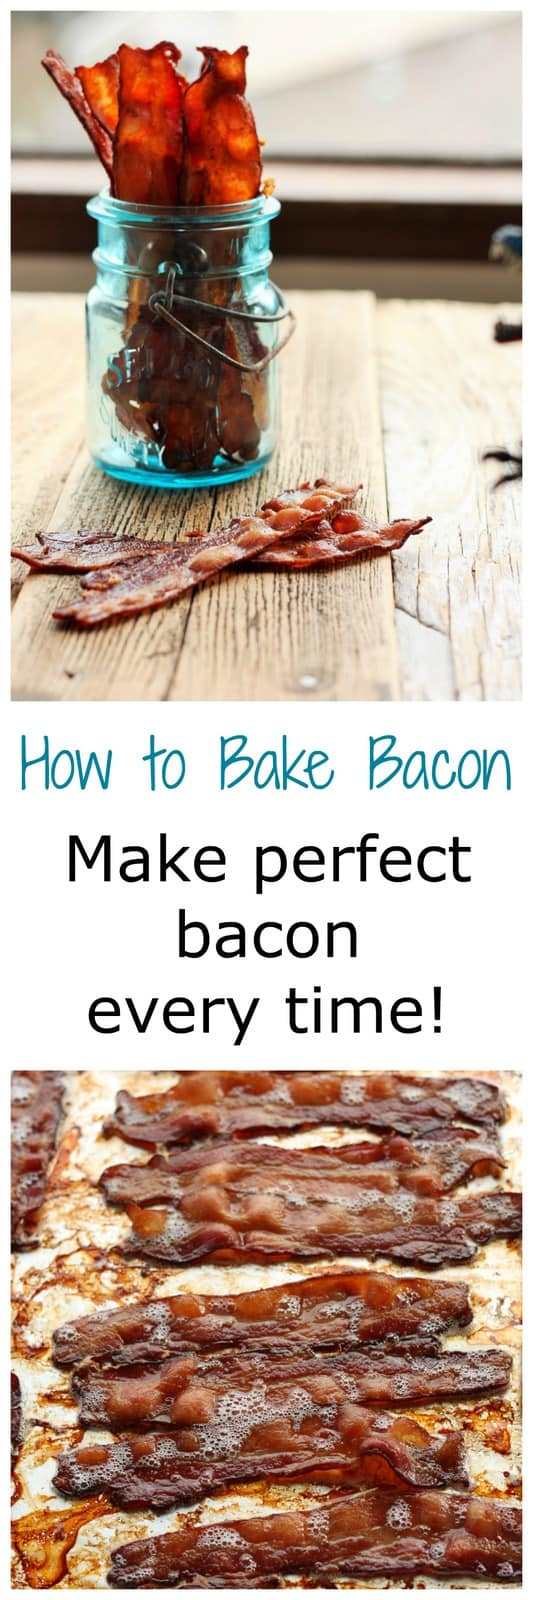 Learn how to bake bacon in this easy tutorial. Stop standing over a hot stove dodging hot oil and covering your kitchen in grease.